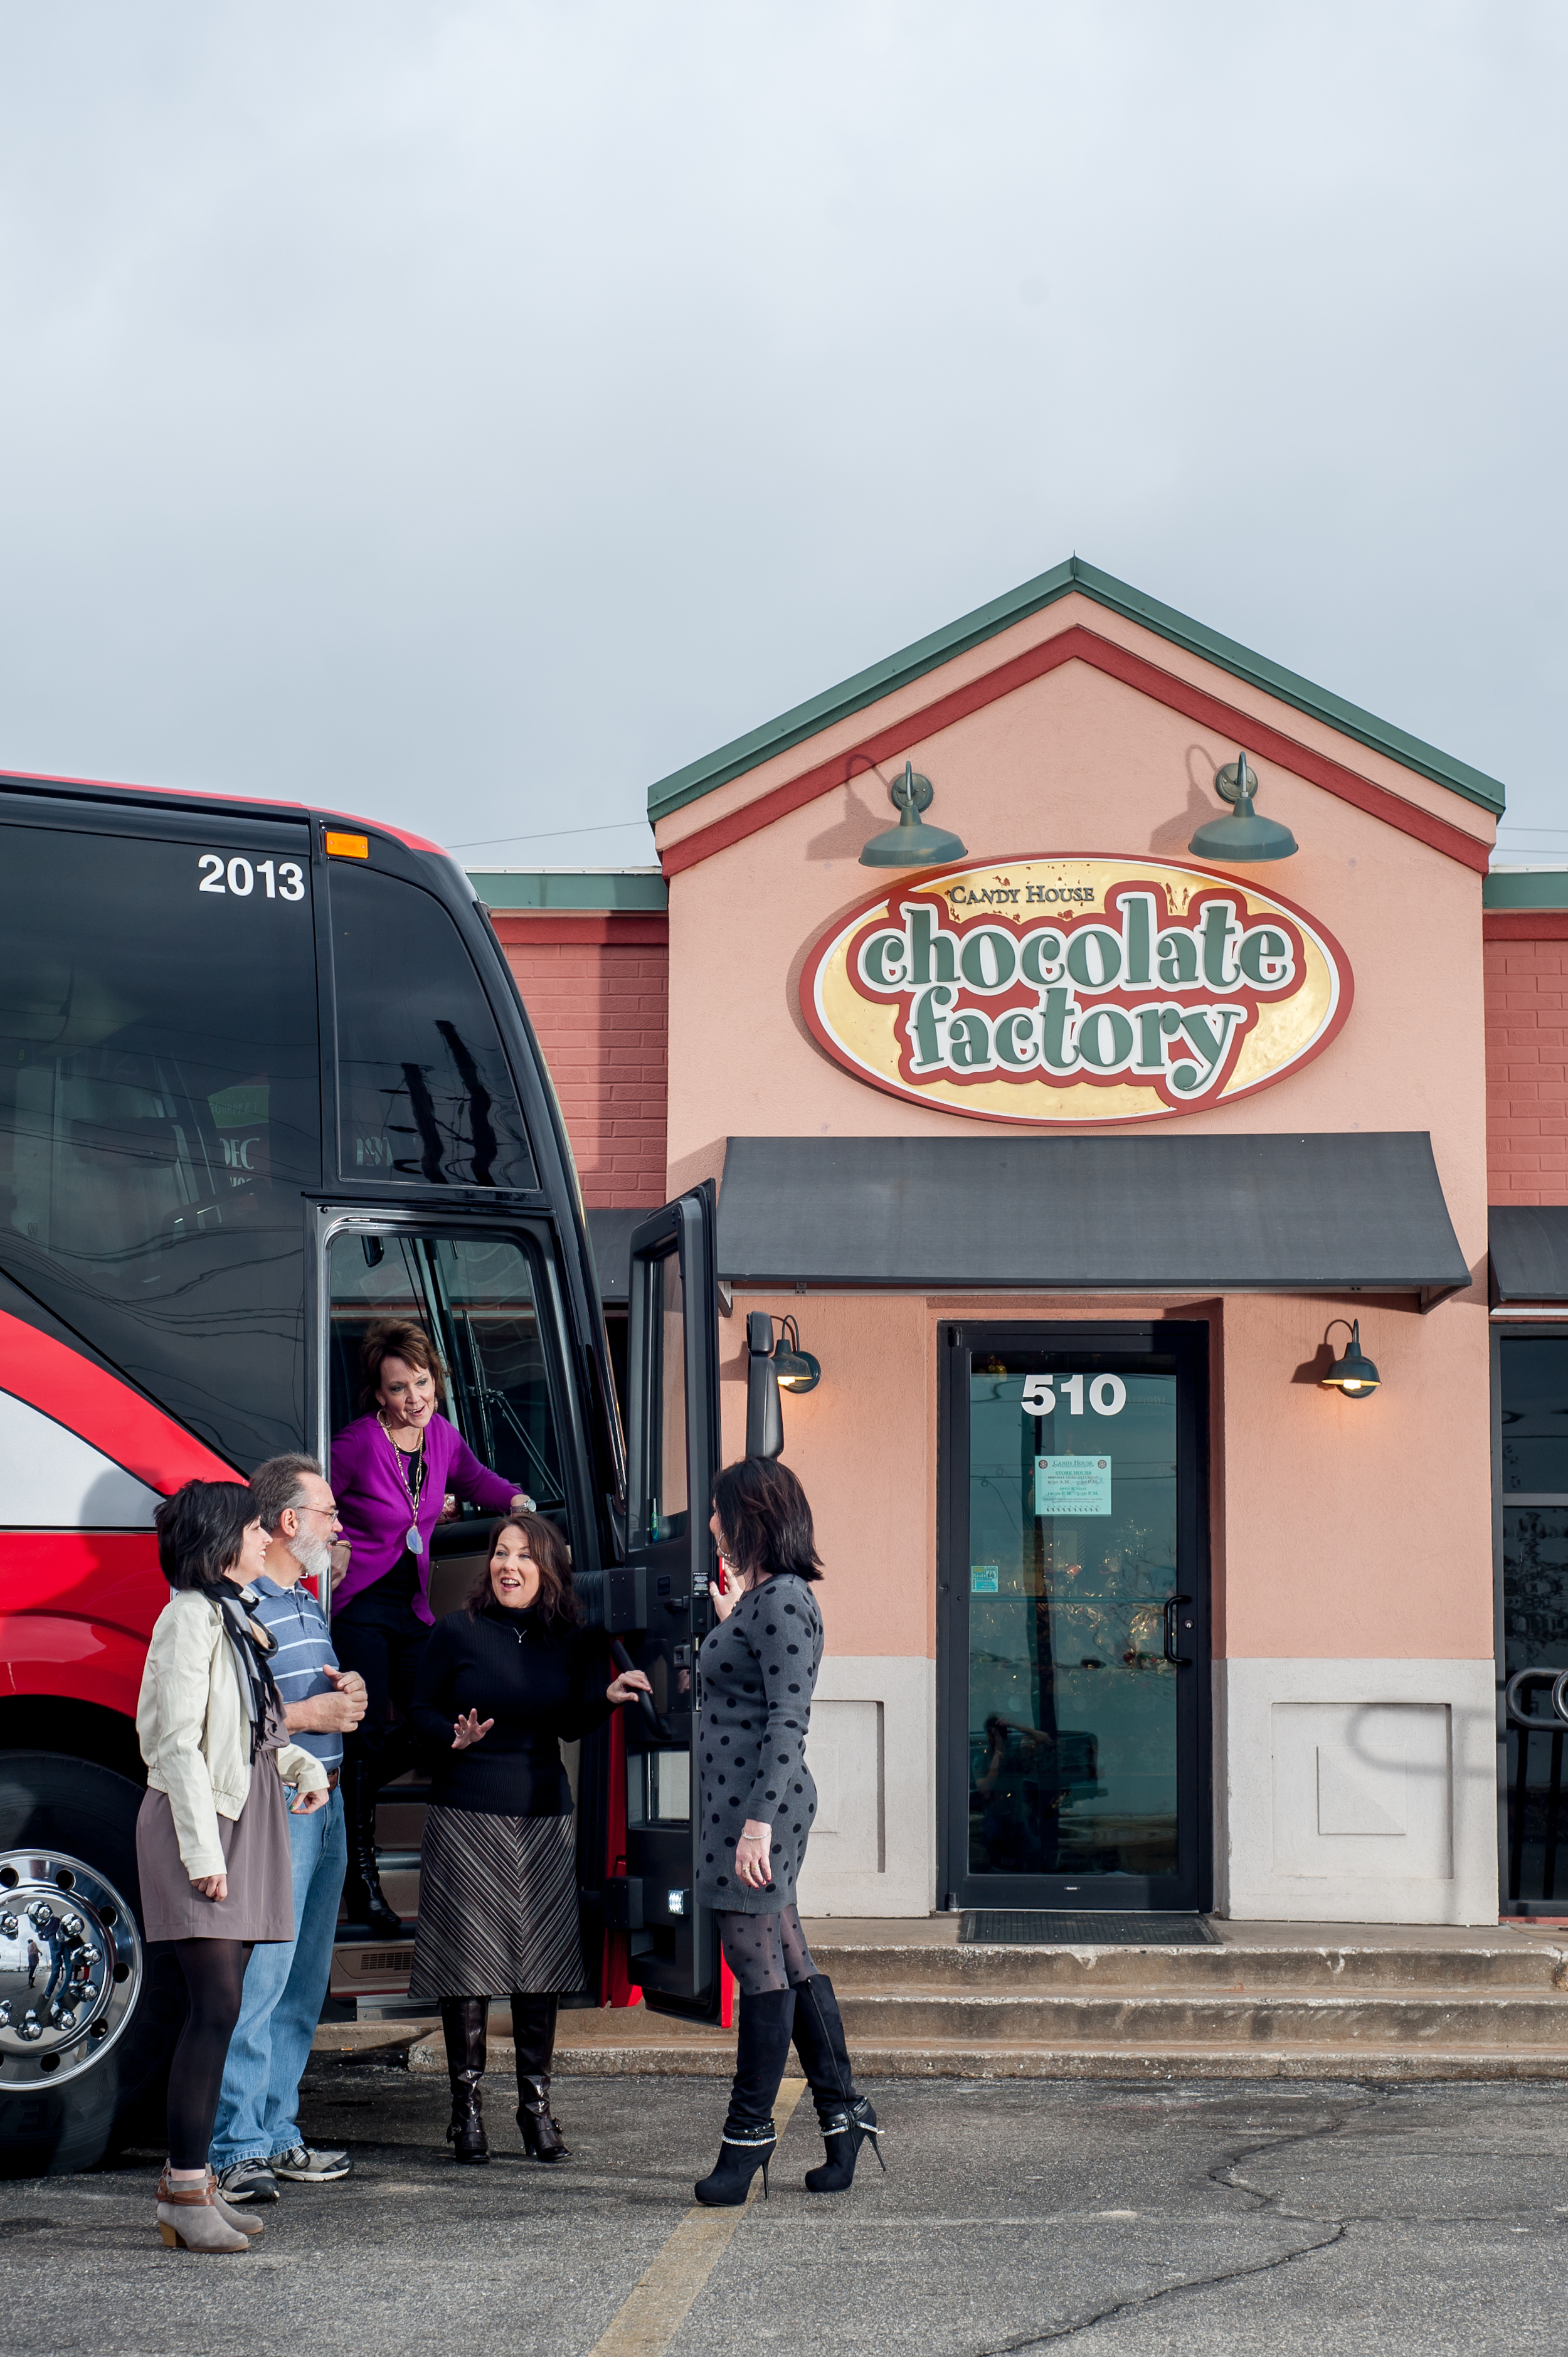 Joplin CVB-  tourism image featuring local attractions in the city of Joplin, MO027.jpg